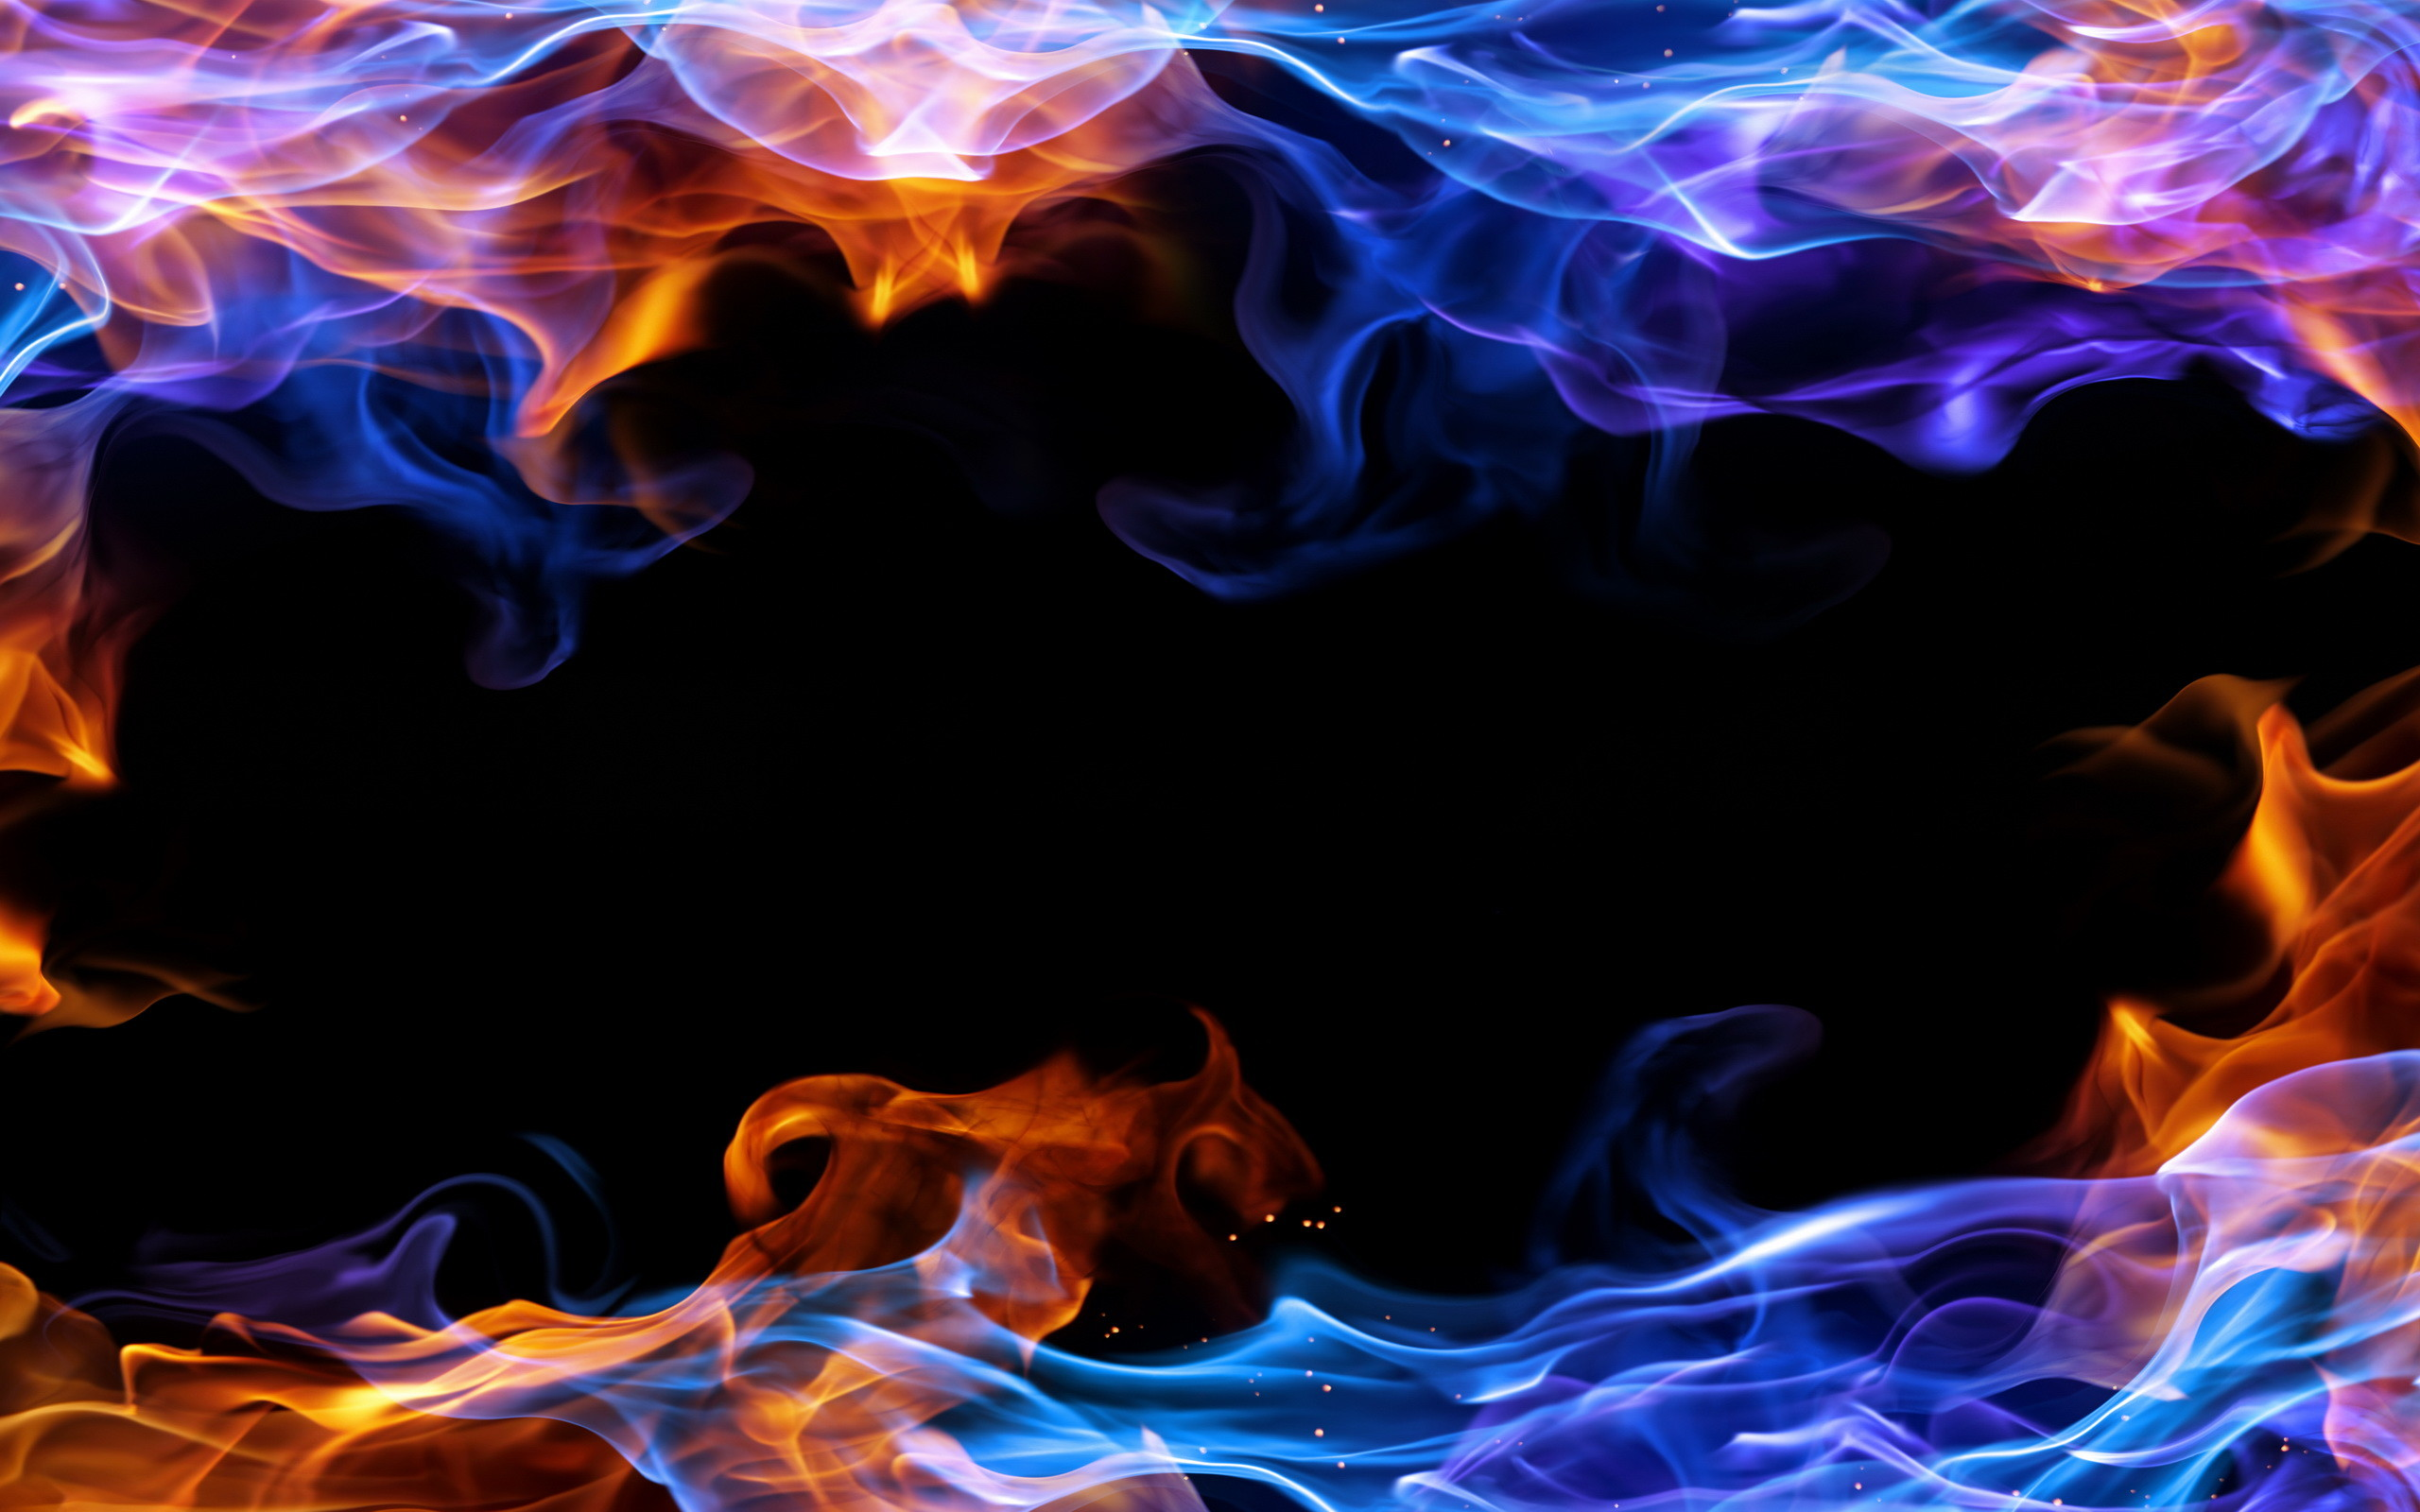 Blue and red fire wallpaper 65 images - Phone wallpapers fire ...